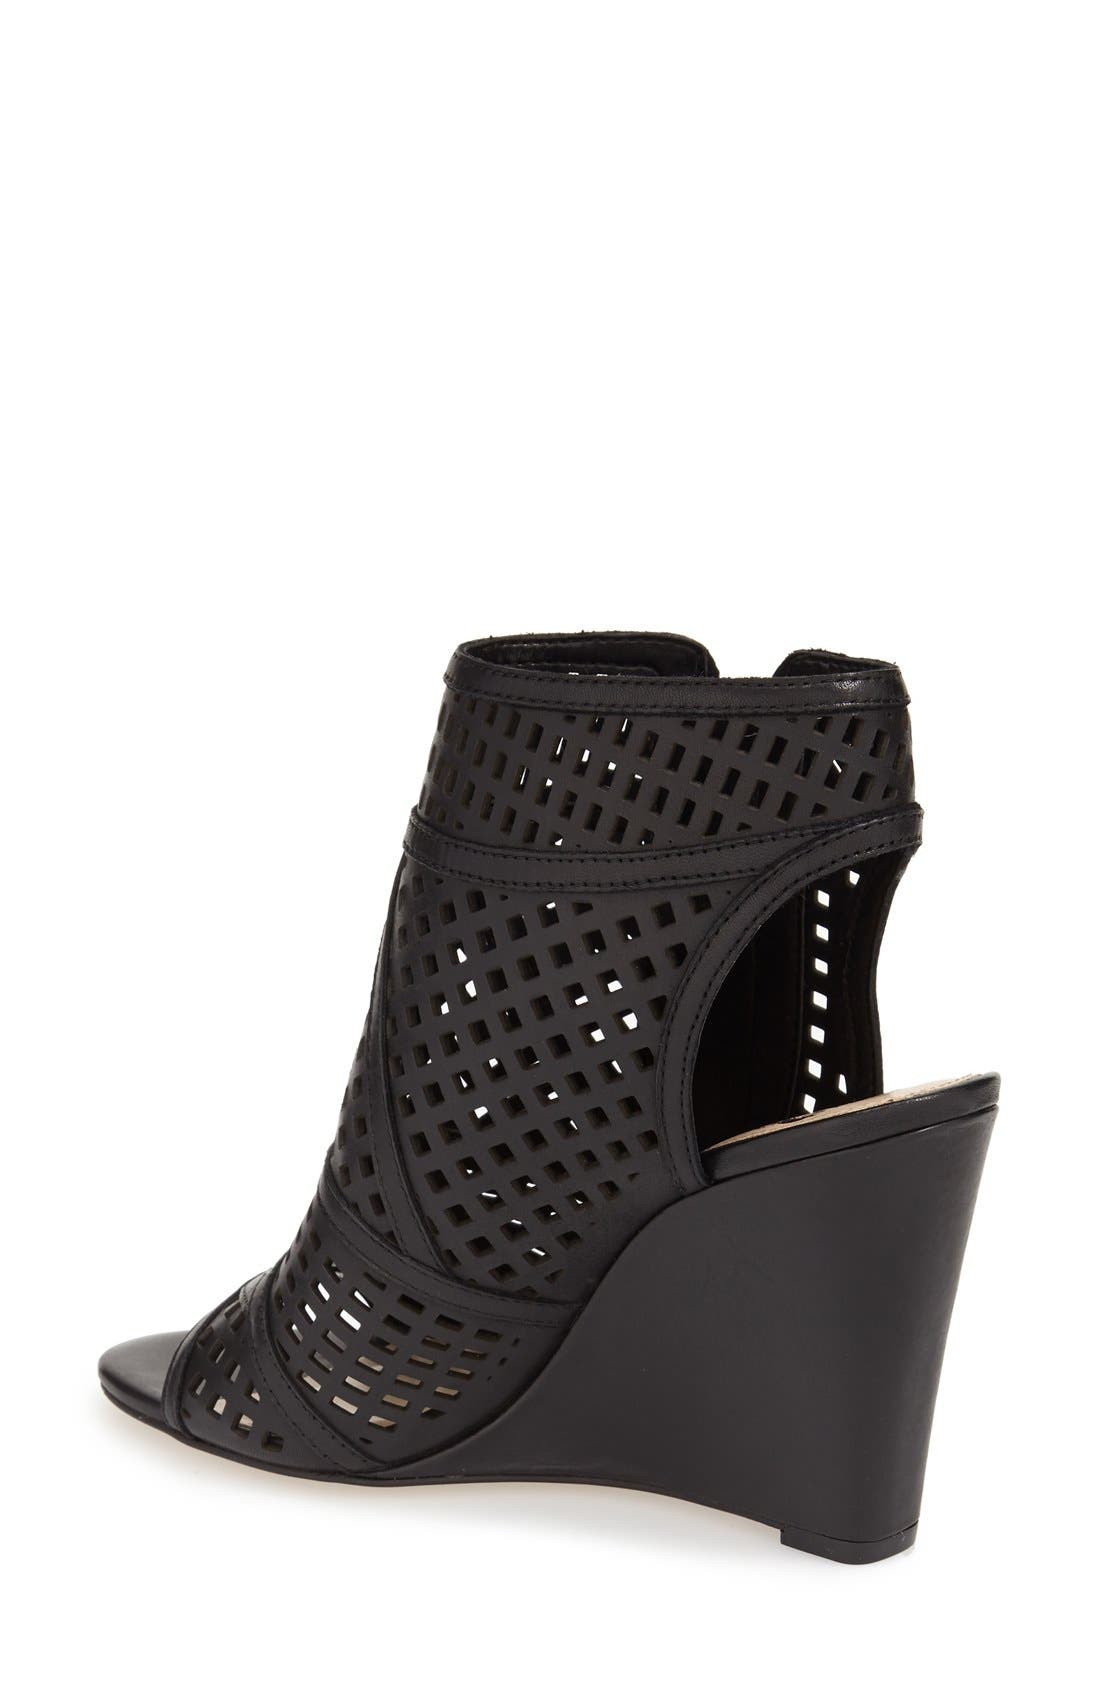 Alternate Image 2  - Vince Camuto 'Xabrina' Perforated Wedge Sandal (Women)